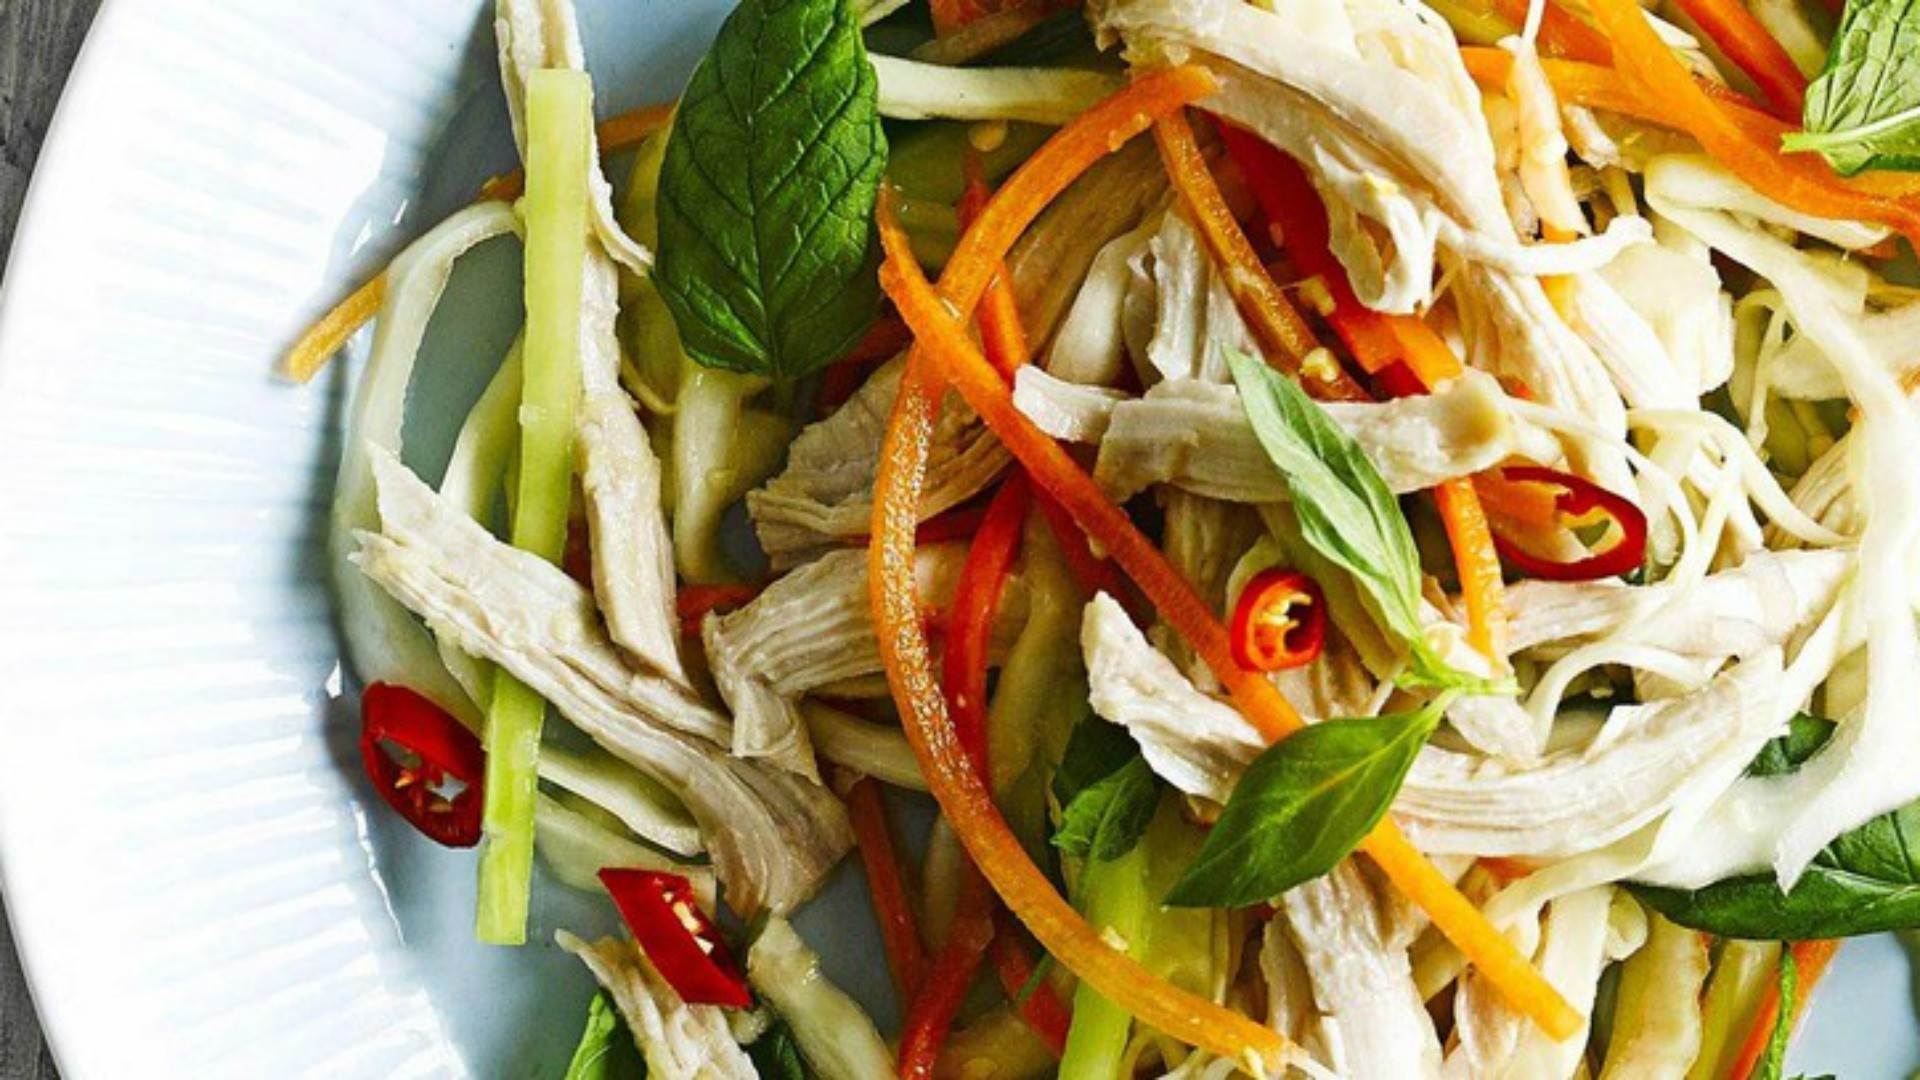 The dressing combines a chilli kick with tart lime juice and fish sauce